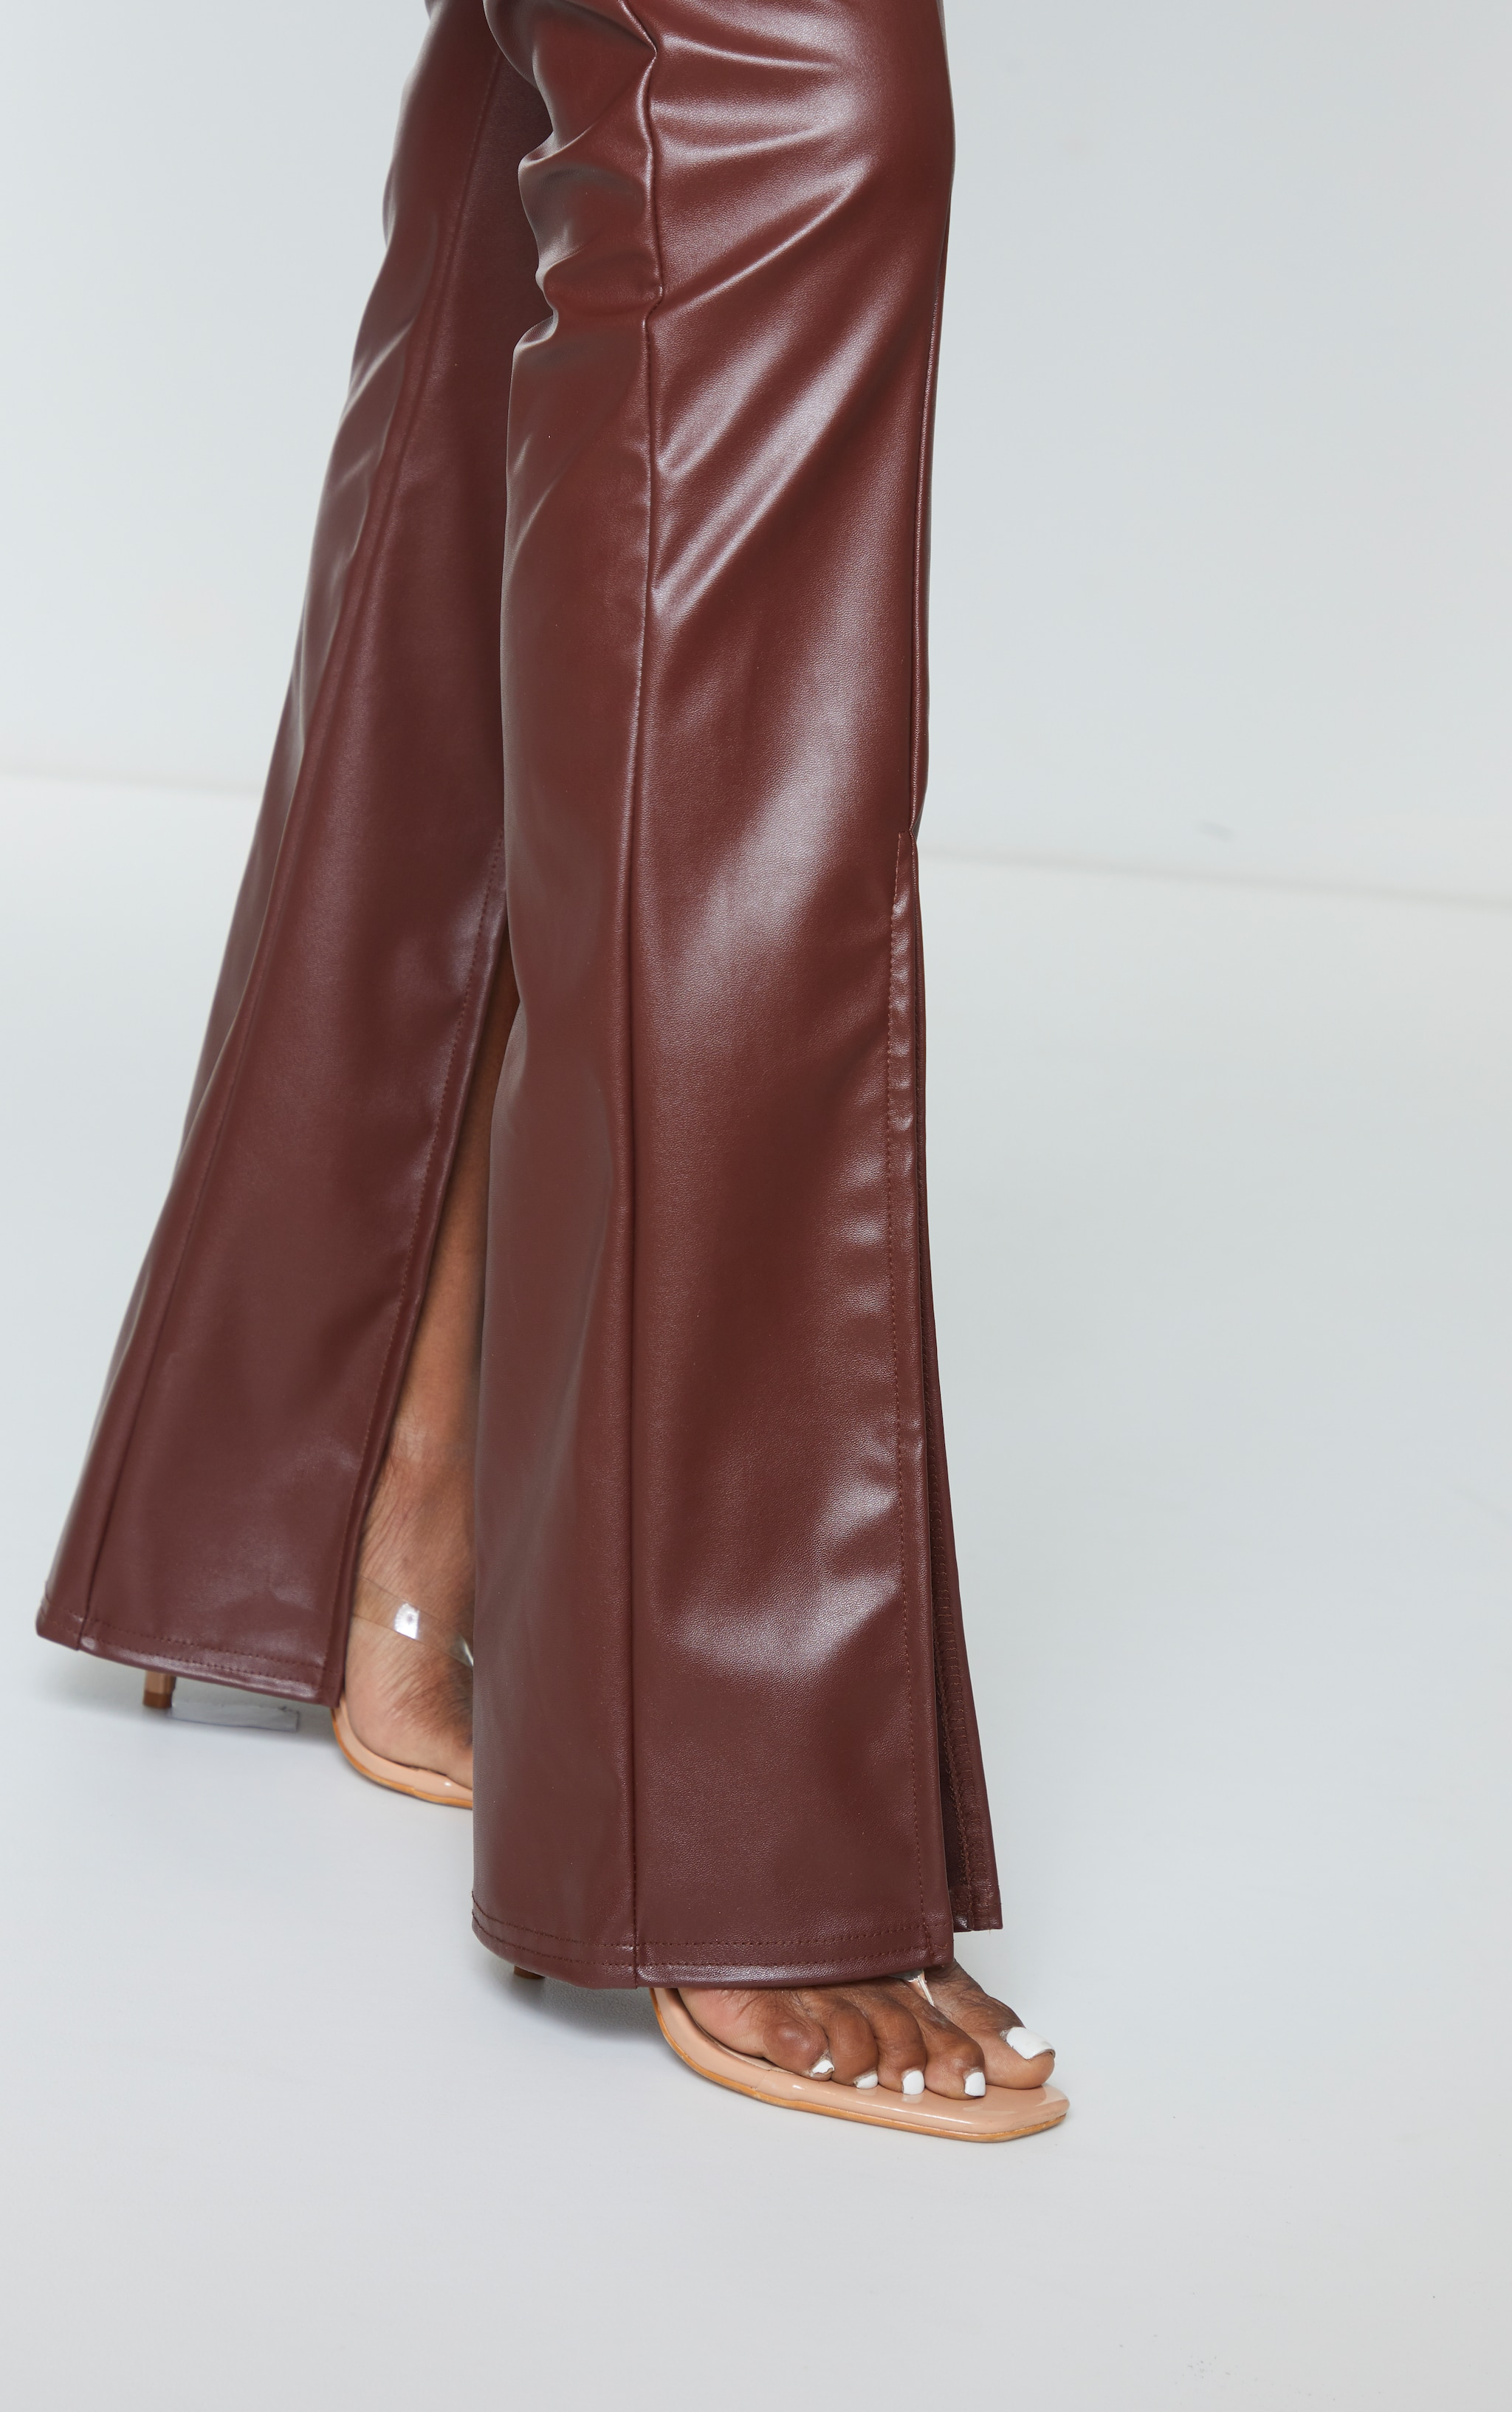 Chocolate Faux Leather Seam Detail Split Hem Pants 4